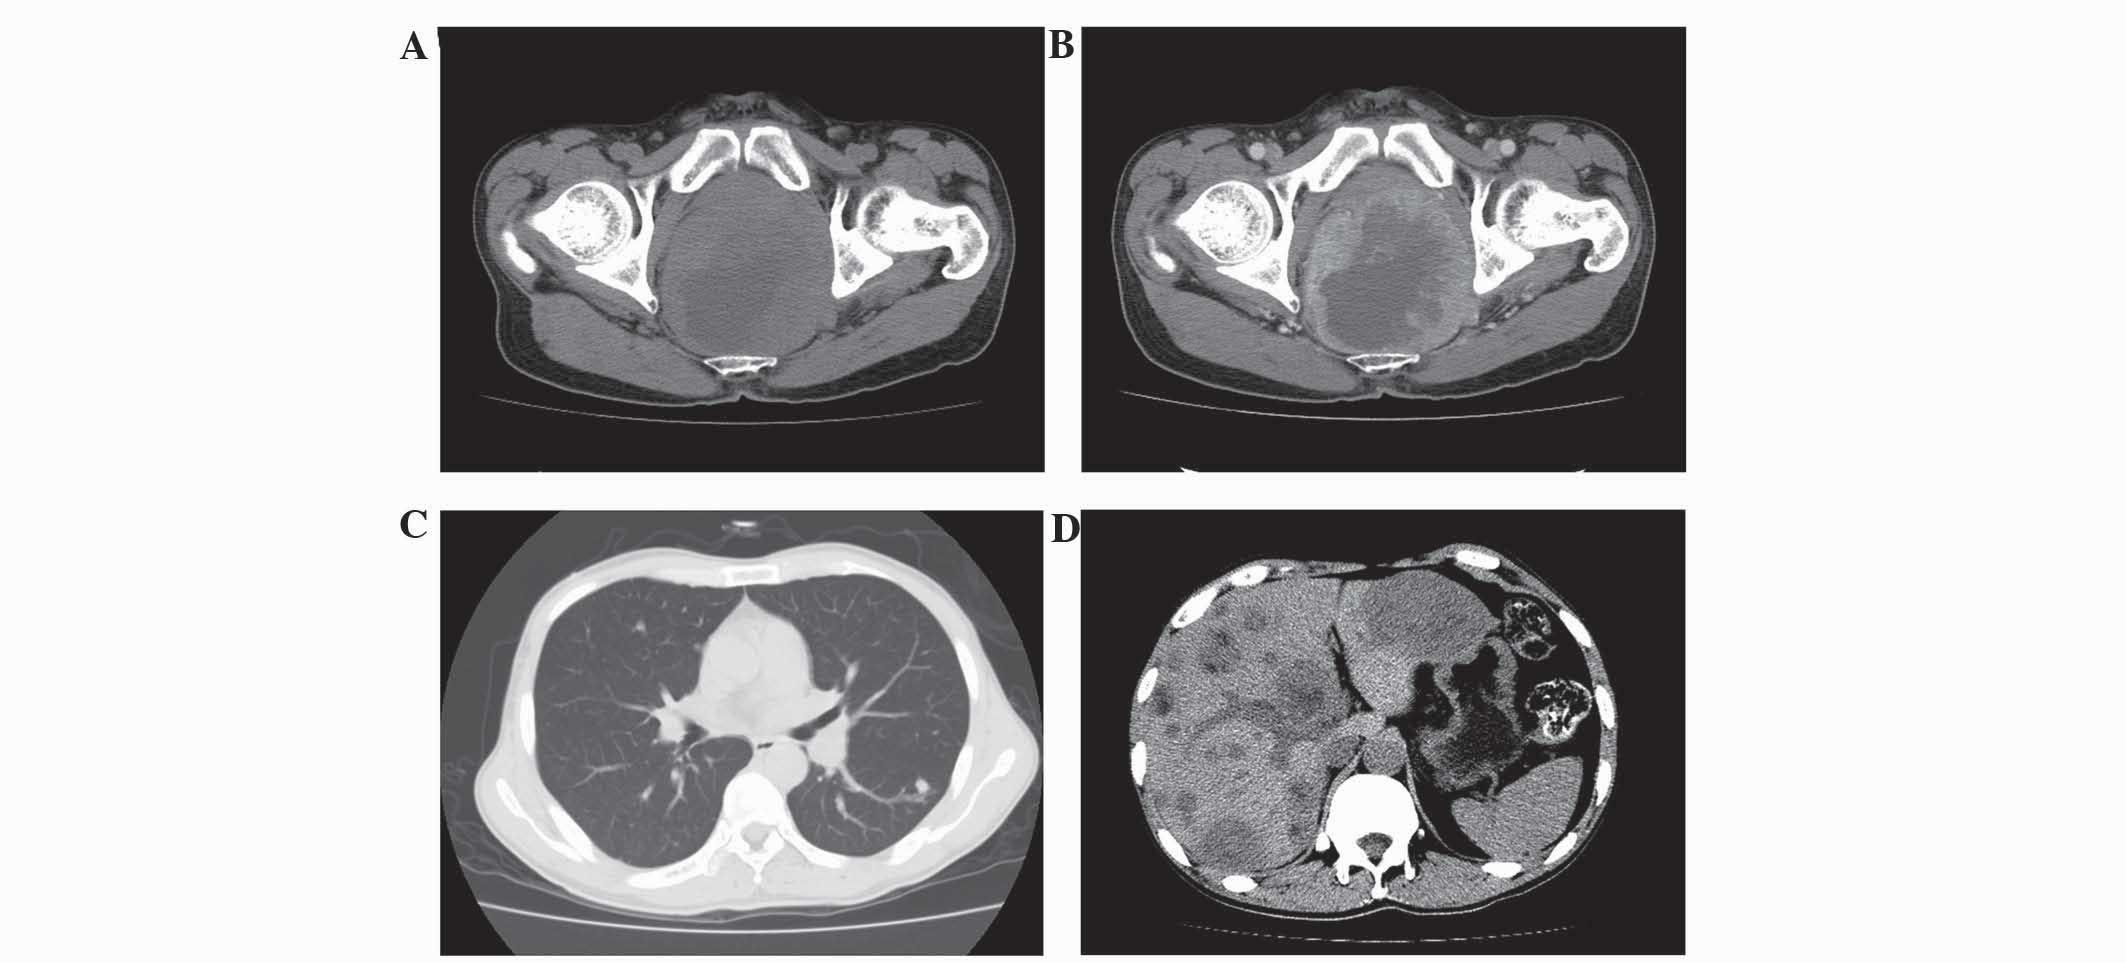 Small Cell Carcinoma Of The Rectum A Report Of Imaging Results From Four Cases